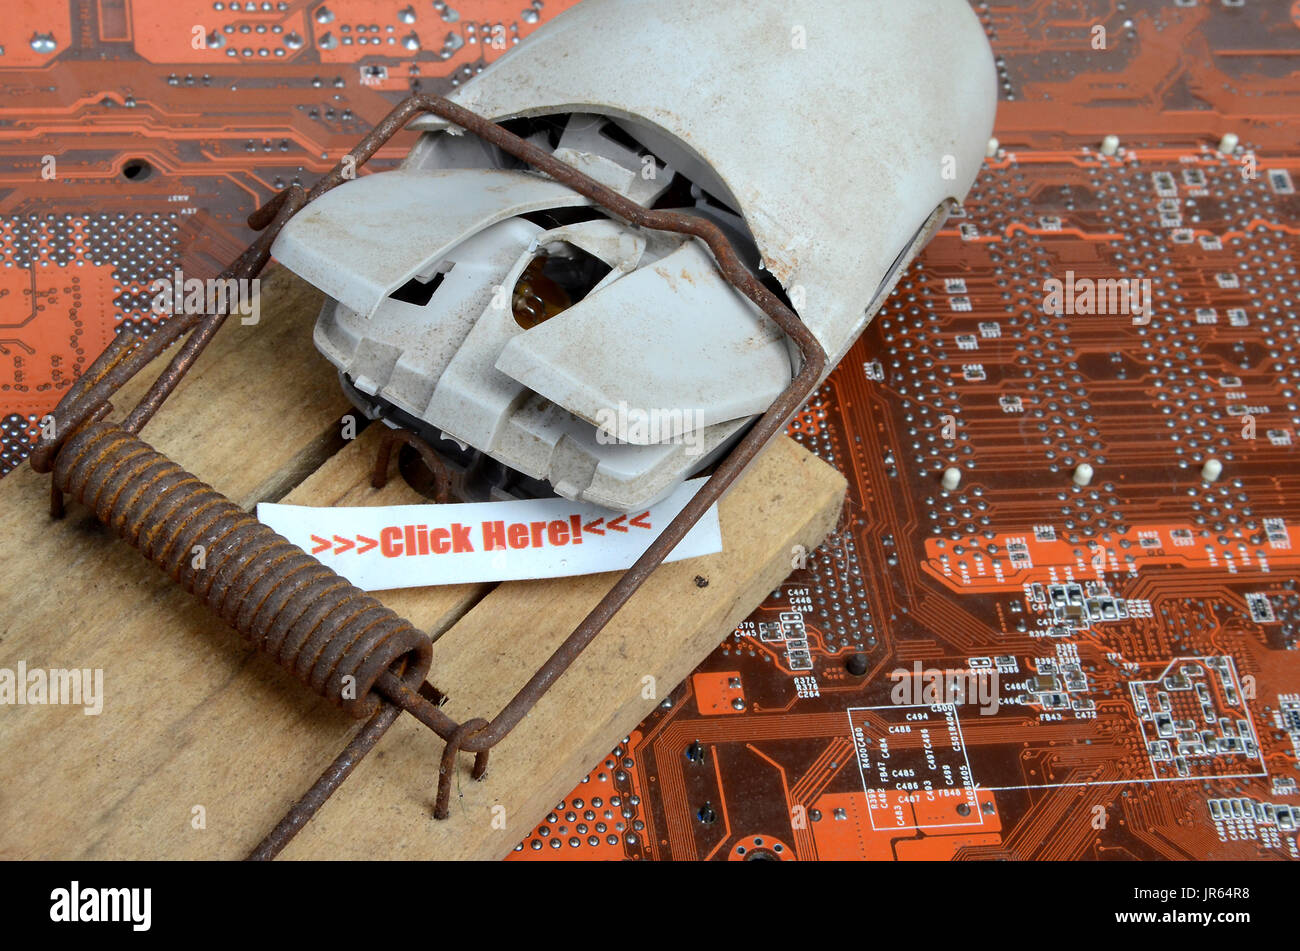 Computer mouse caught in trap. - Stock Image